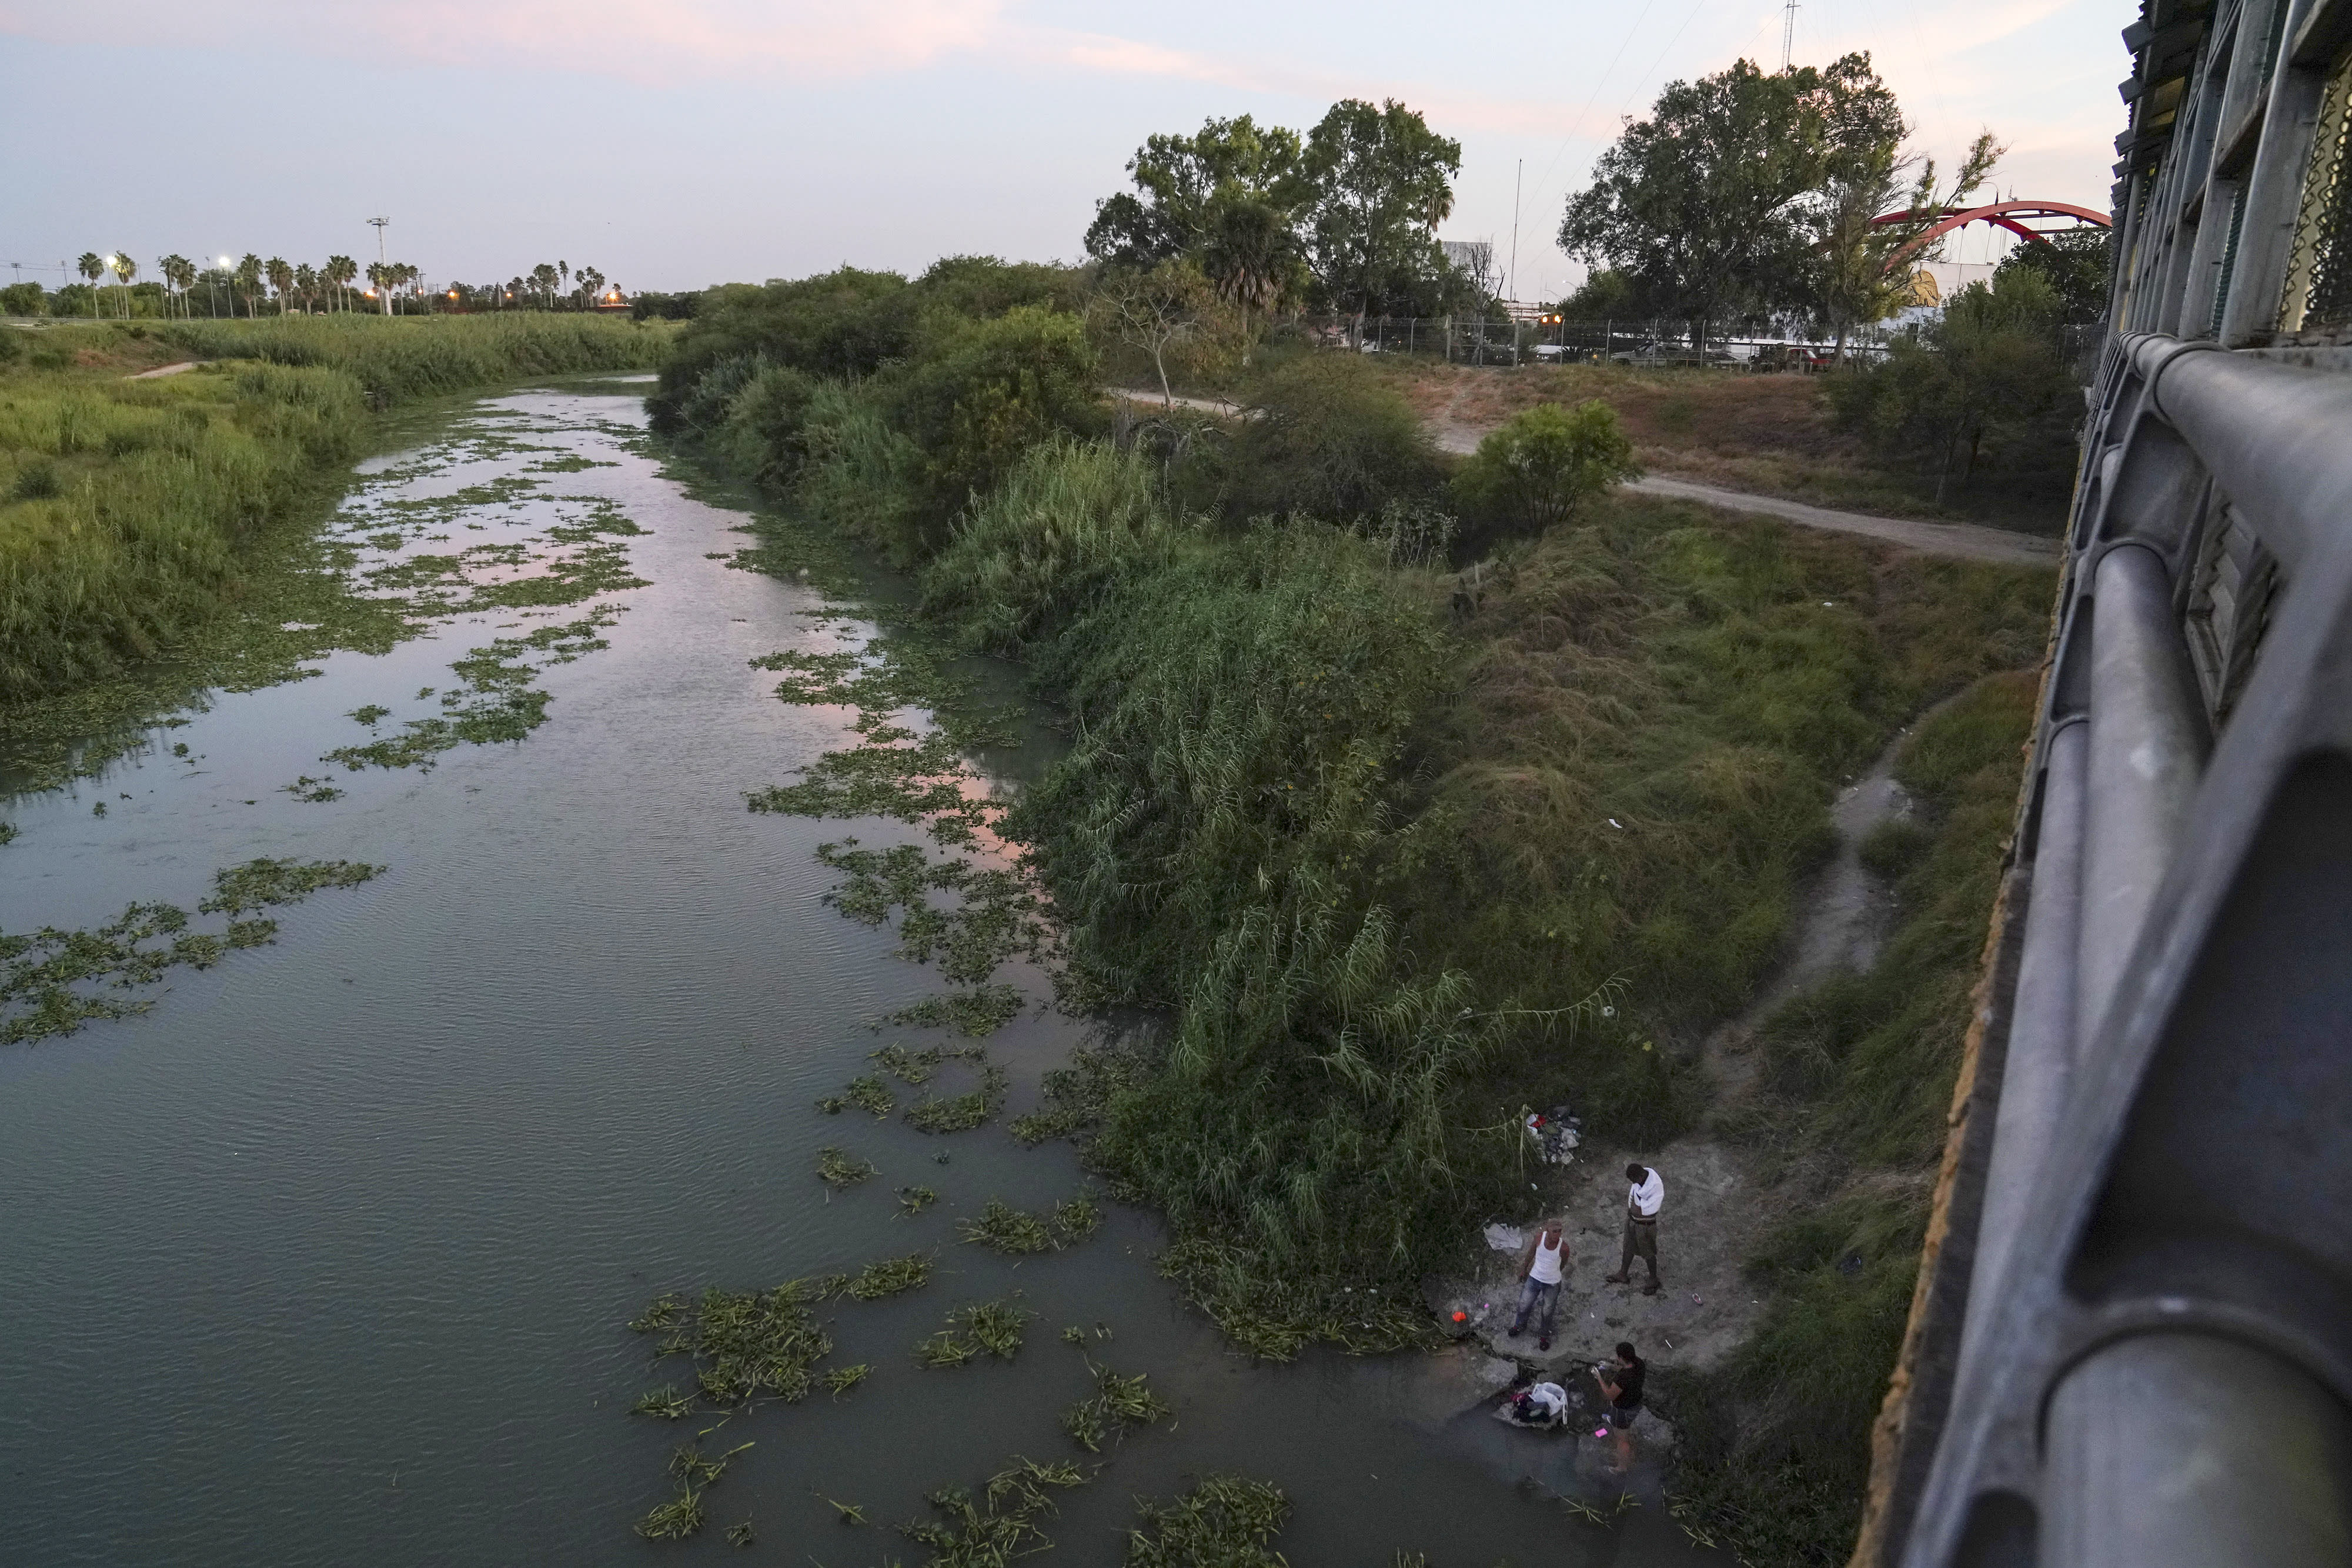 """In this Aug. 30, 2019, photo, asylum seekers from Cuba and Nicaragua wash their clothes in the Rio Grande near the Gateway International Bridge in Matamoros, Mexico. They were sent back to Mexico to wait for their asylum case under the """"Remain in Mexico"""" program, officially called the Migrant Protection Protocols. (AP Photo/Veronica G. Cardenas)"""